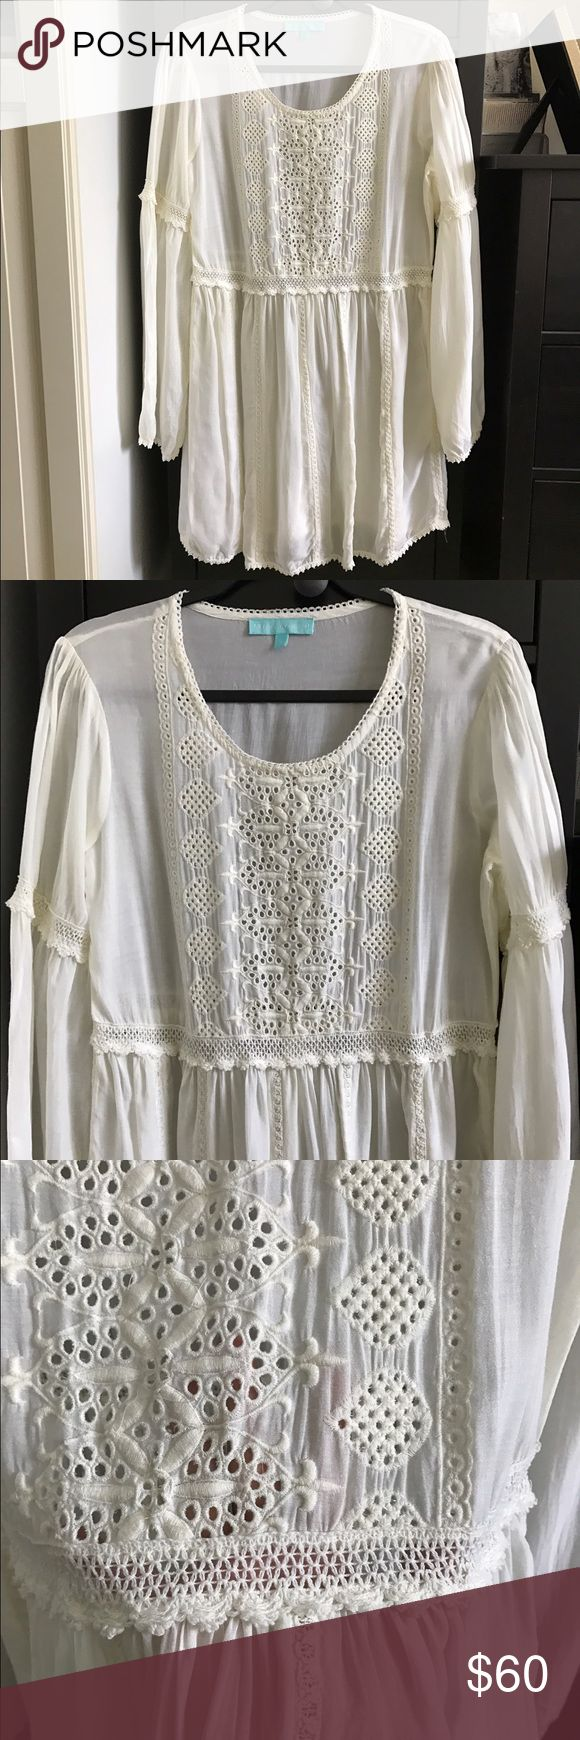 Melissa Obadash beach cover-up peasant dress Super cute embroidery detailing for an elevated beach look. Excellent used condition, no visible stains or snags. Melissa Odabash Dresses Mini